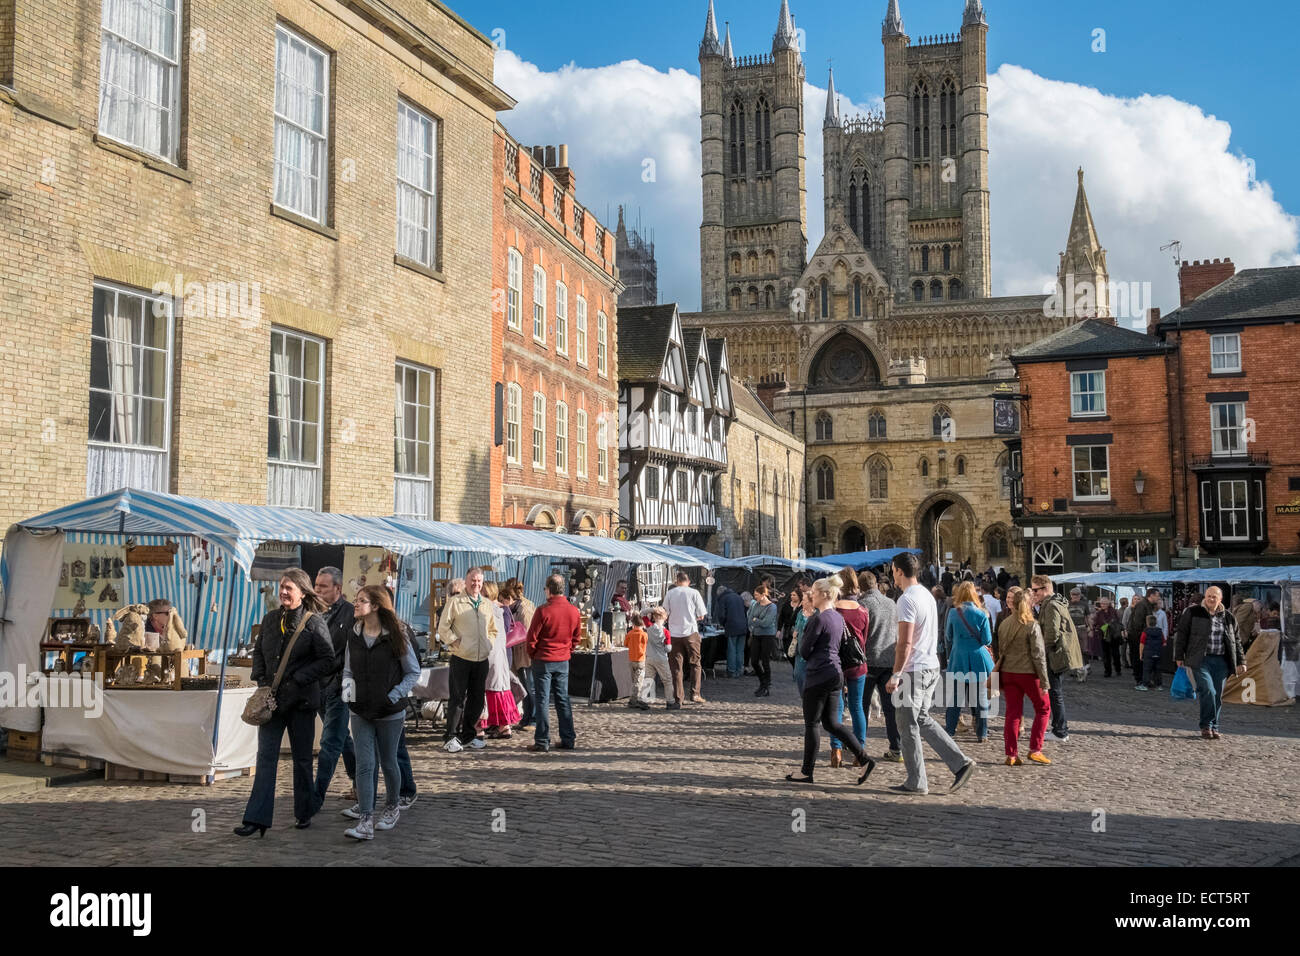 People walking round Lincoln market square, with Cathedral in background, Lincolnshire, England UK - Stock Image